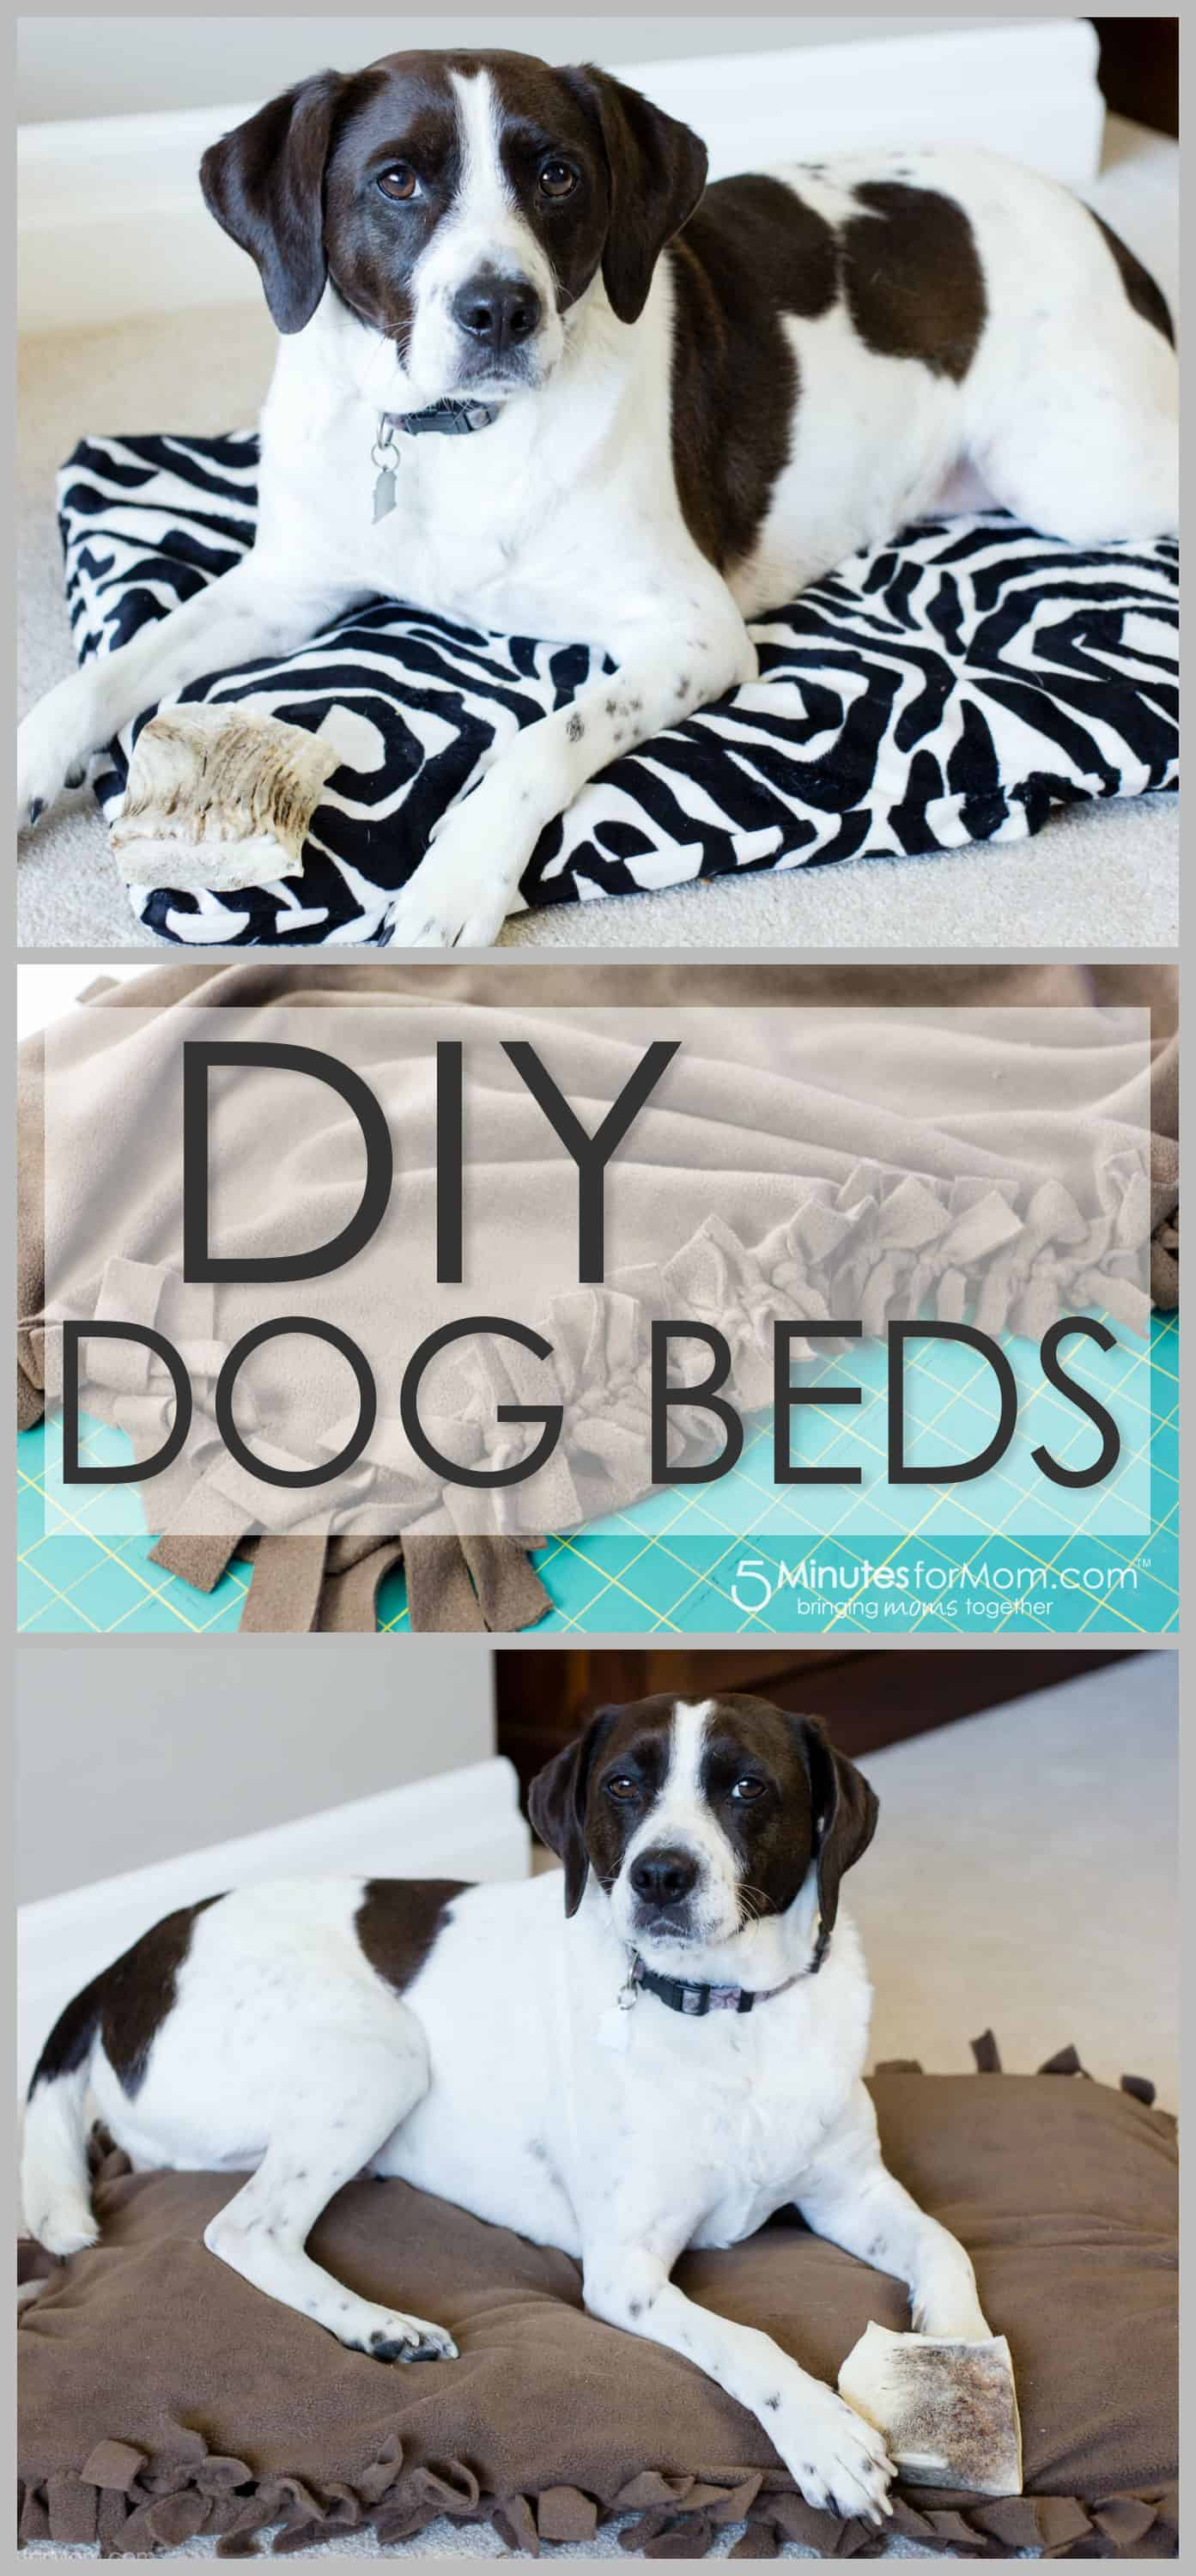 DIY dog bed tutorial - How to make a dog bed.